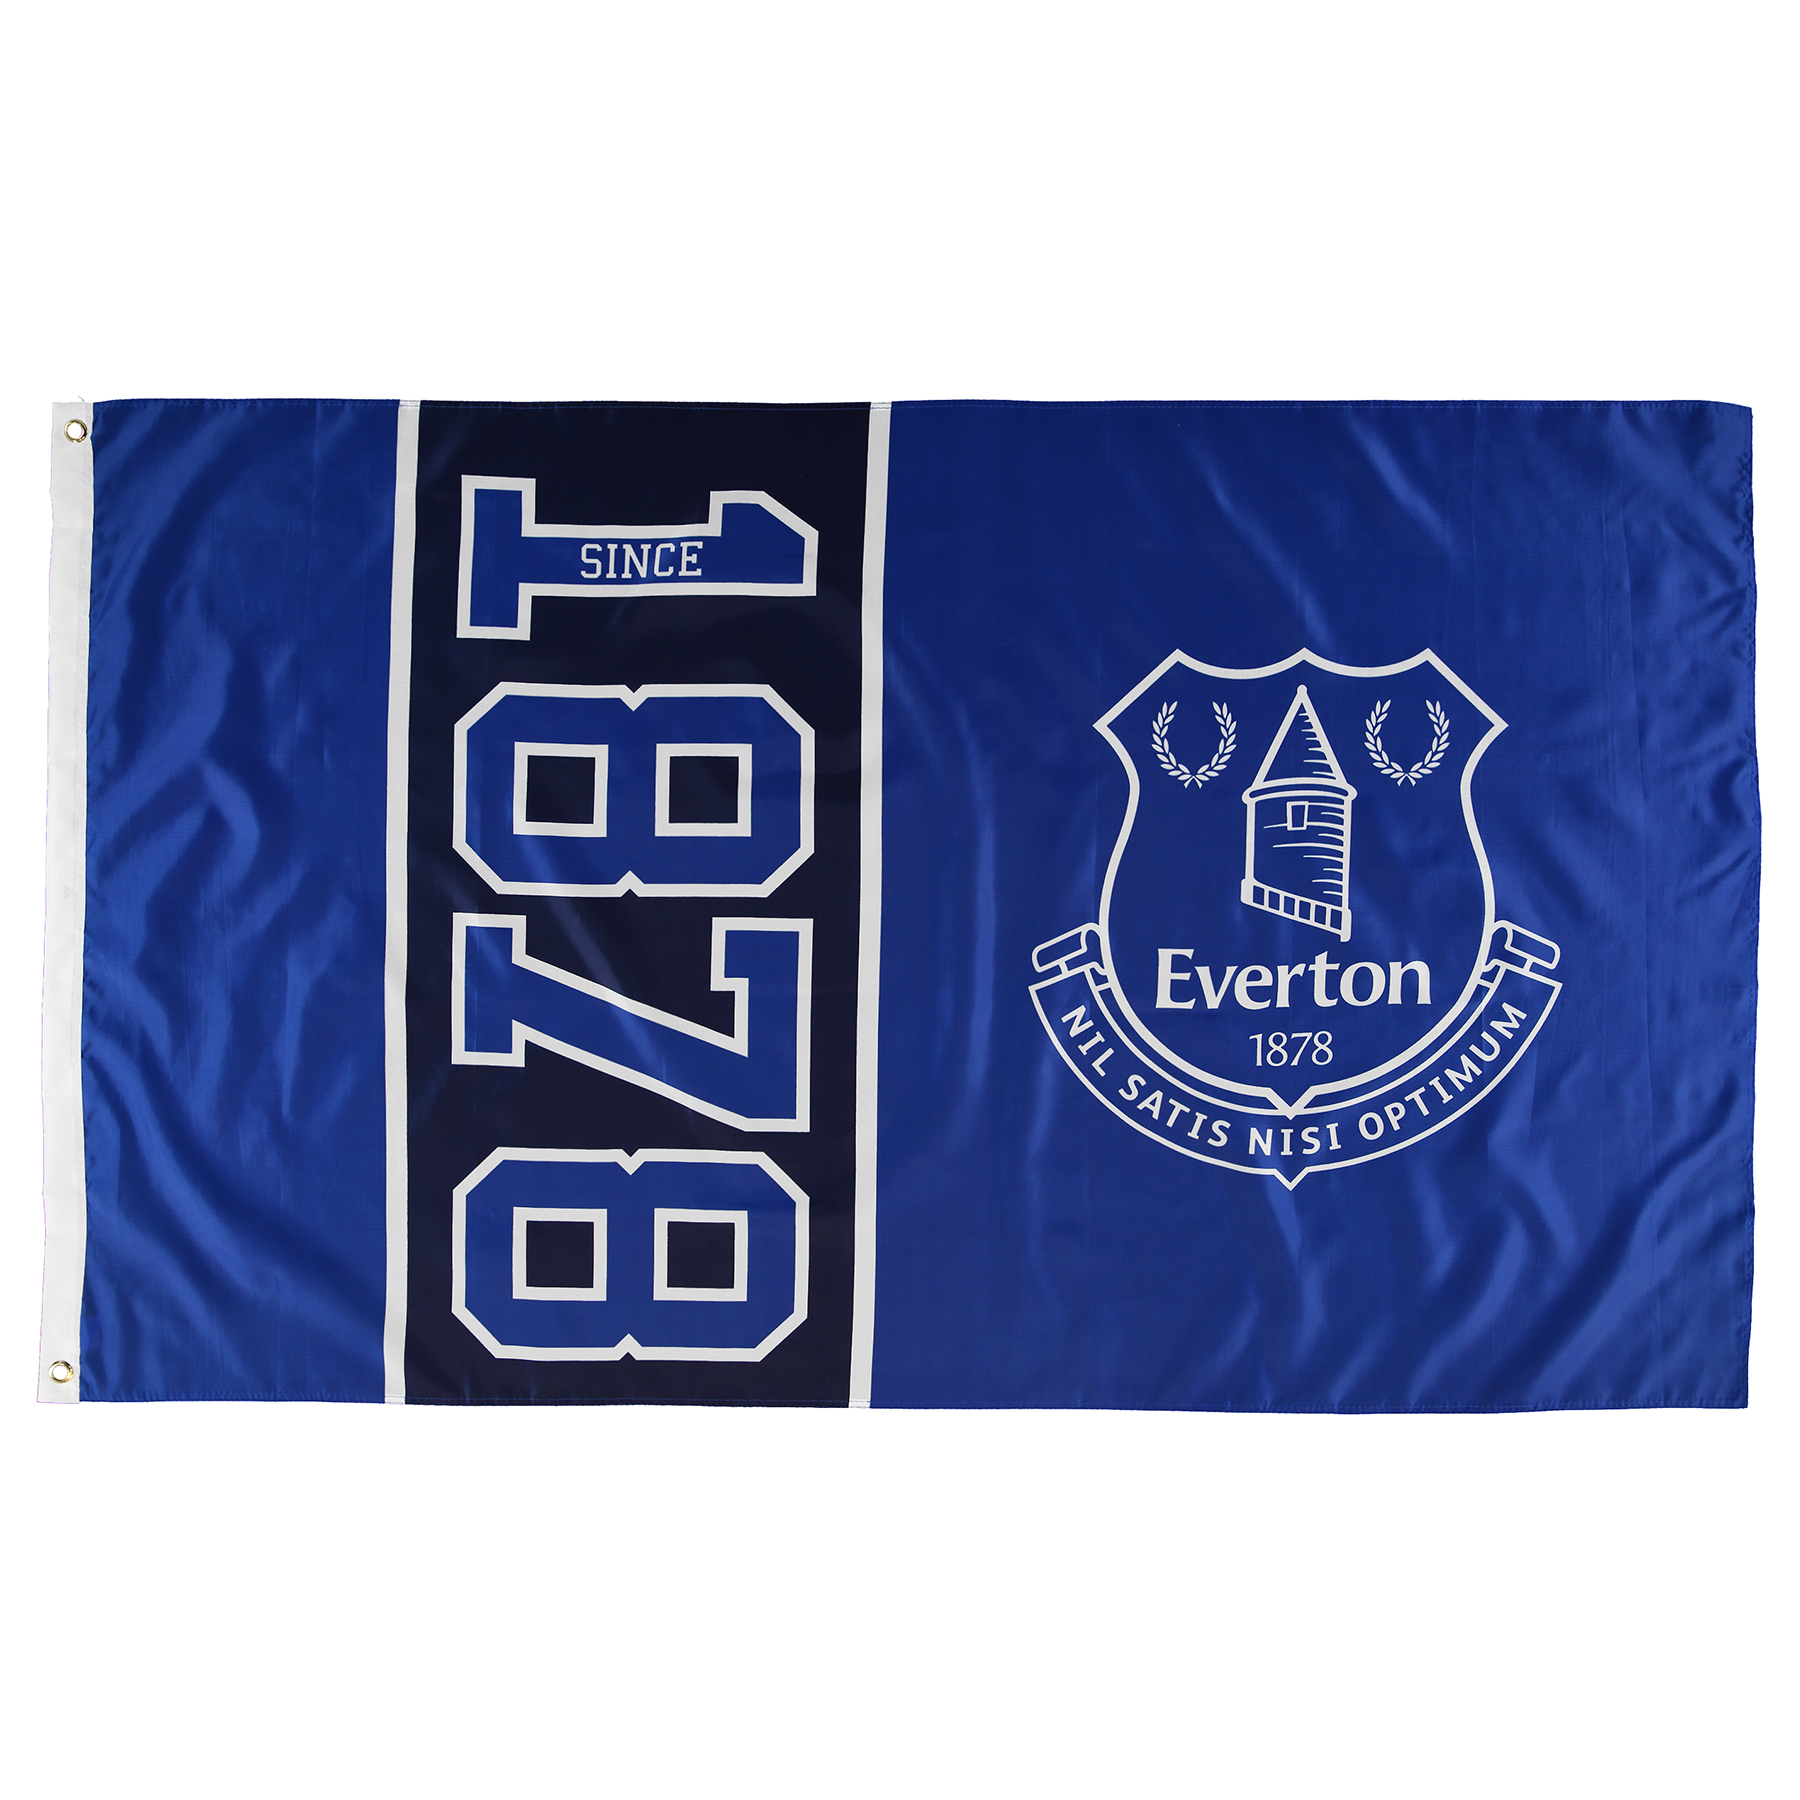 Everton 1878 5 x 3 Flag